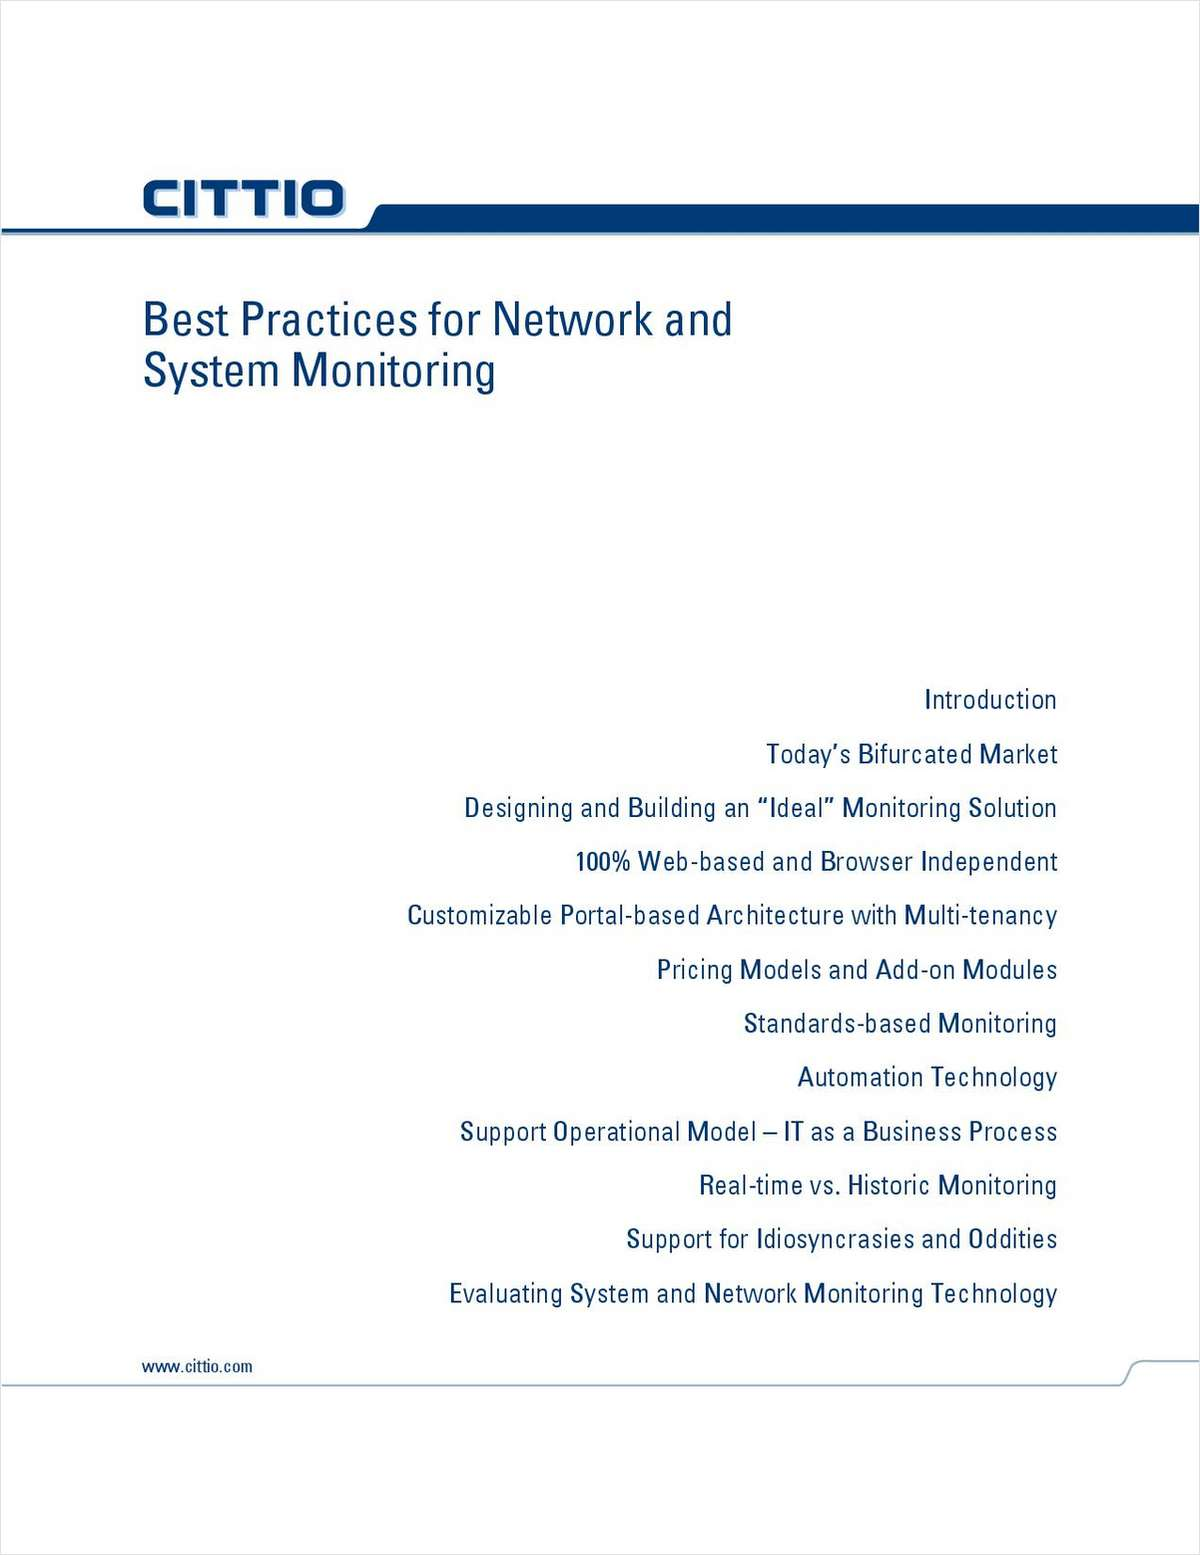 Best Practices For Network And System Monitoring Free Cittio Inc White Paper